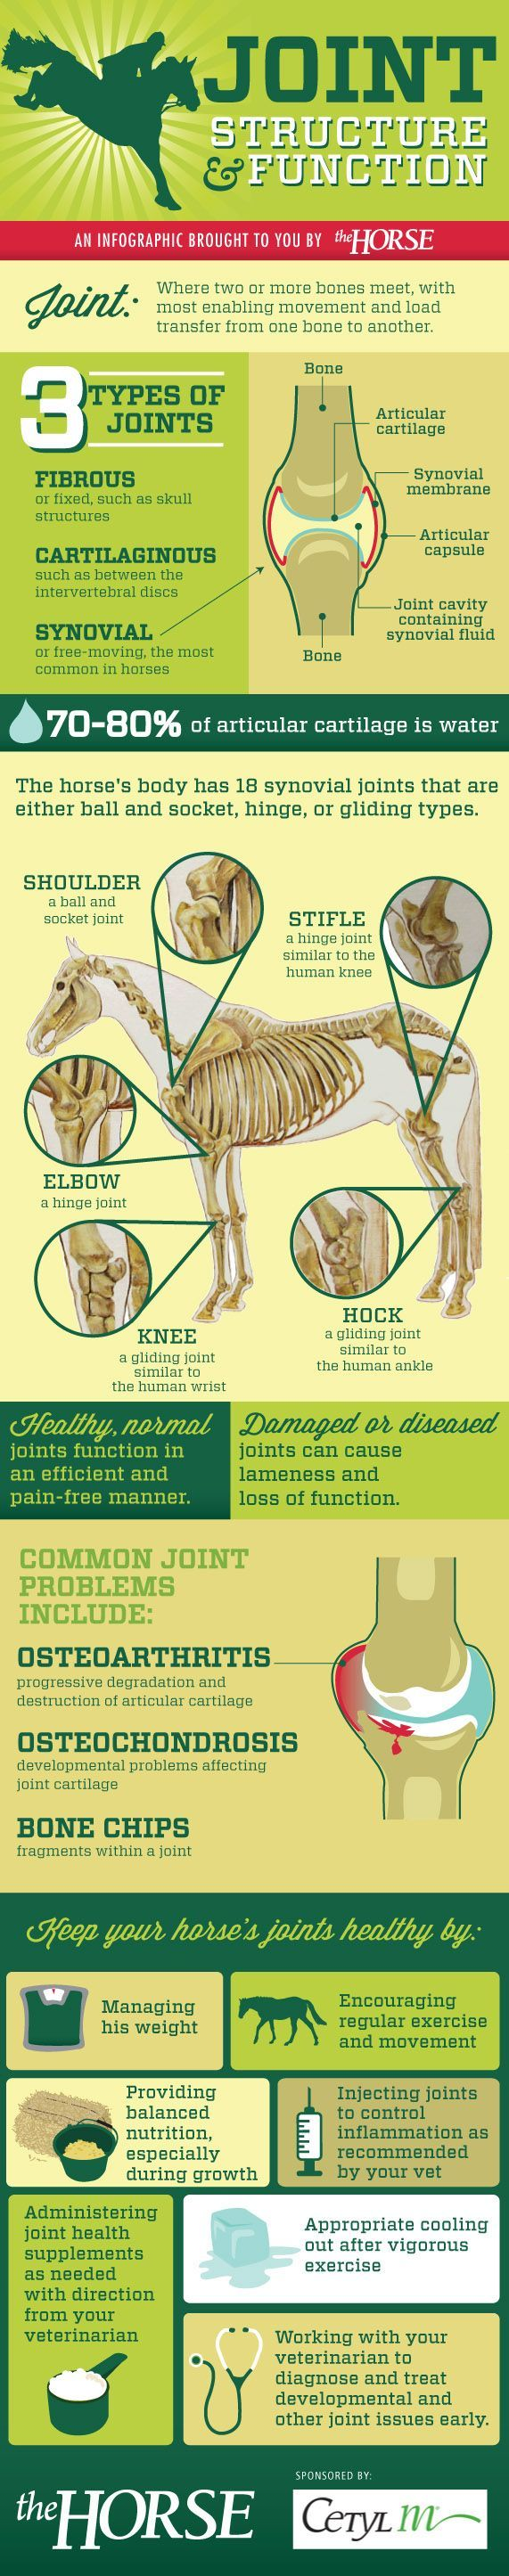 [INFOGRAPHIC] Learn about how horse joints work and how you can keep your horse's joints healthy with this step-by-step visual guide, brought to you by http://TheHorse.com and @Response Products . #horses #horsehealth